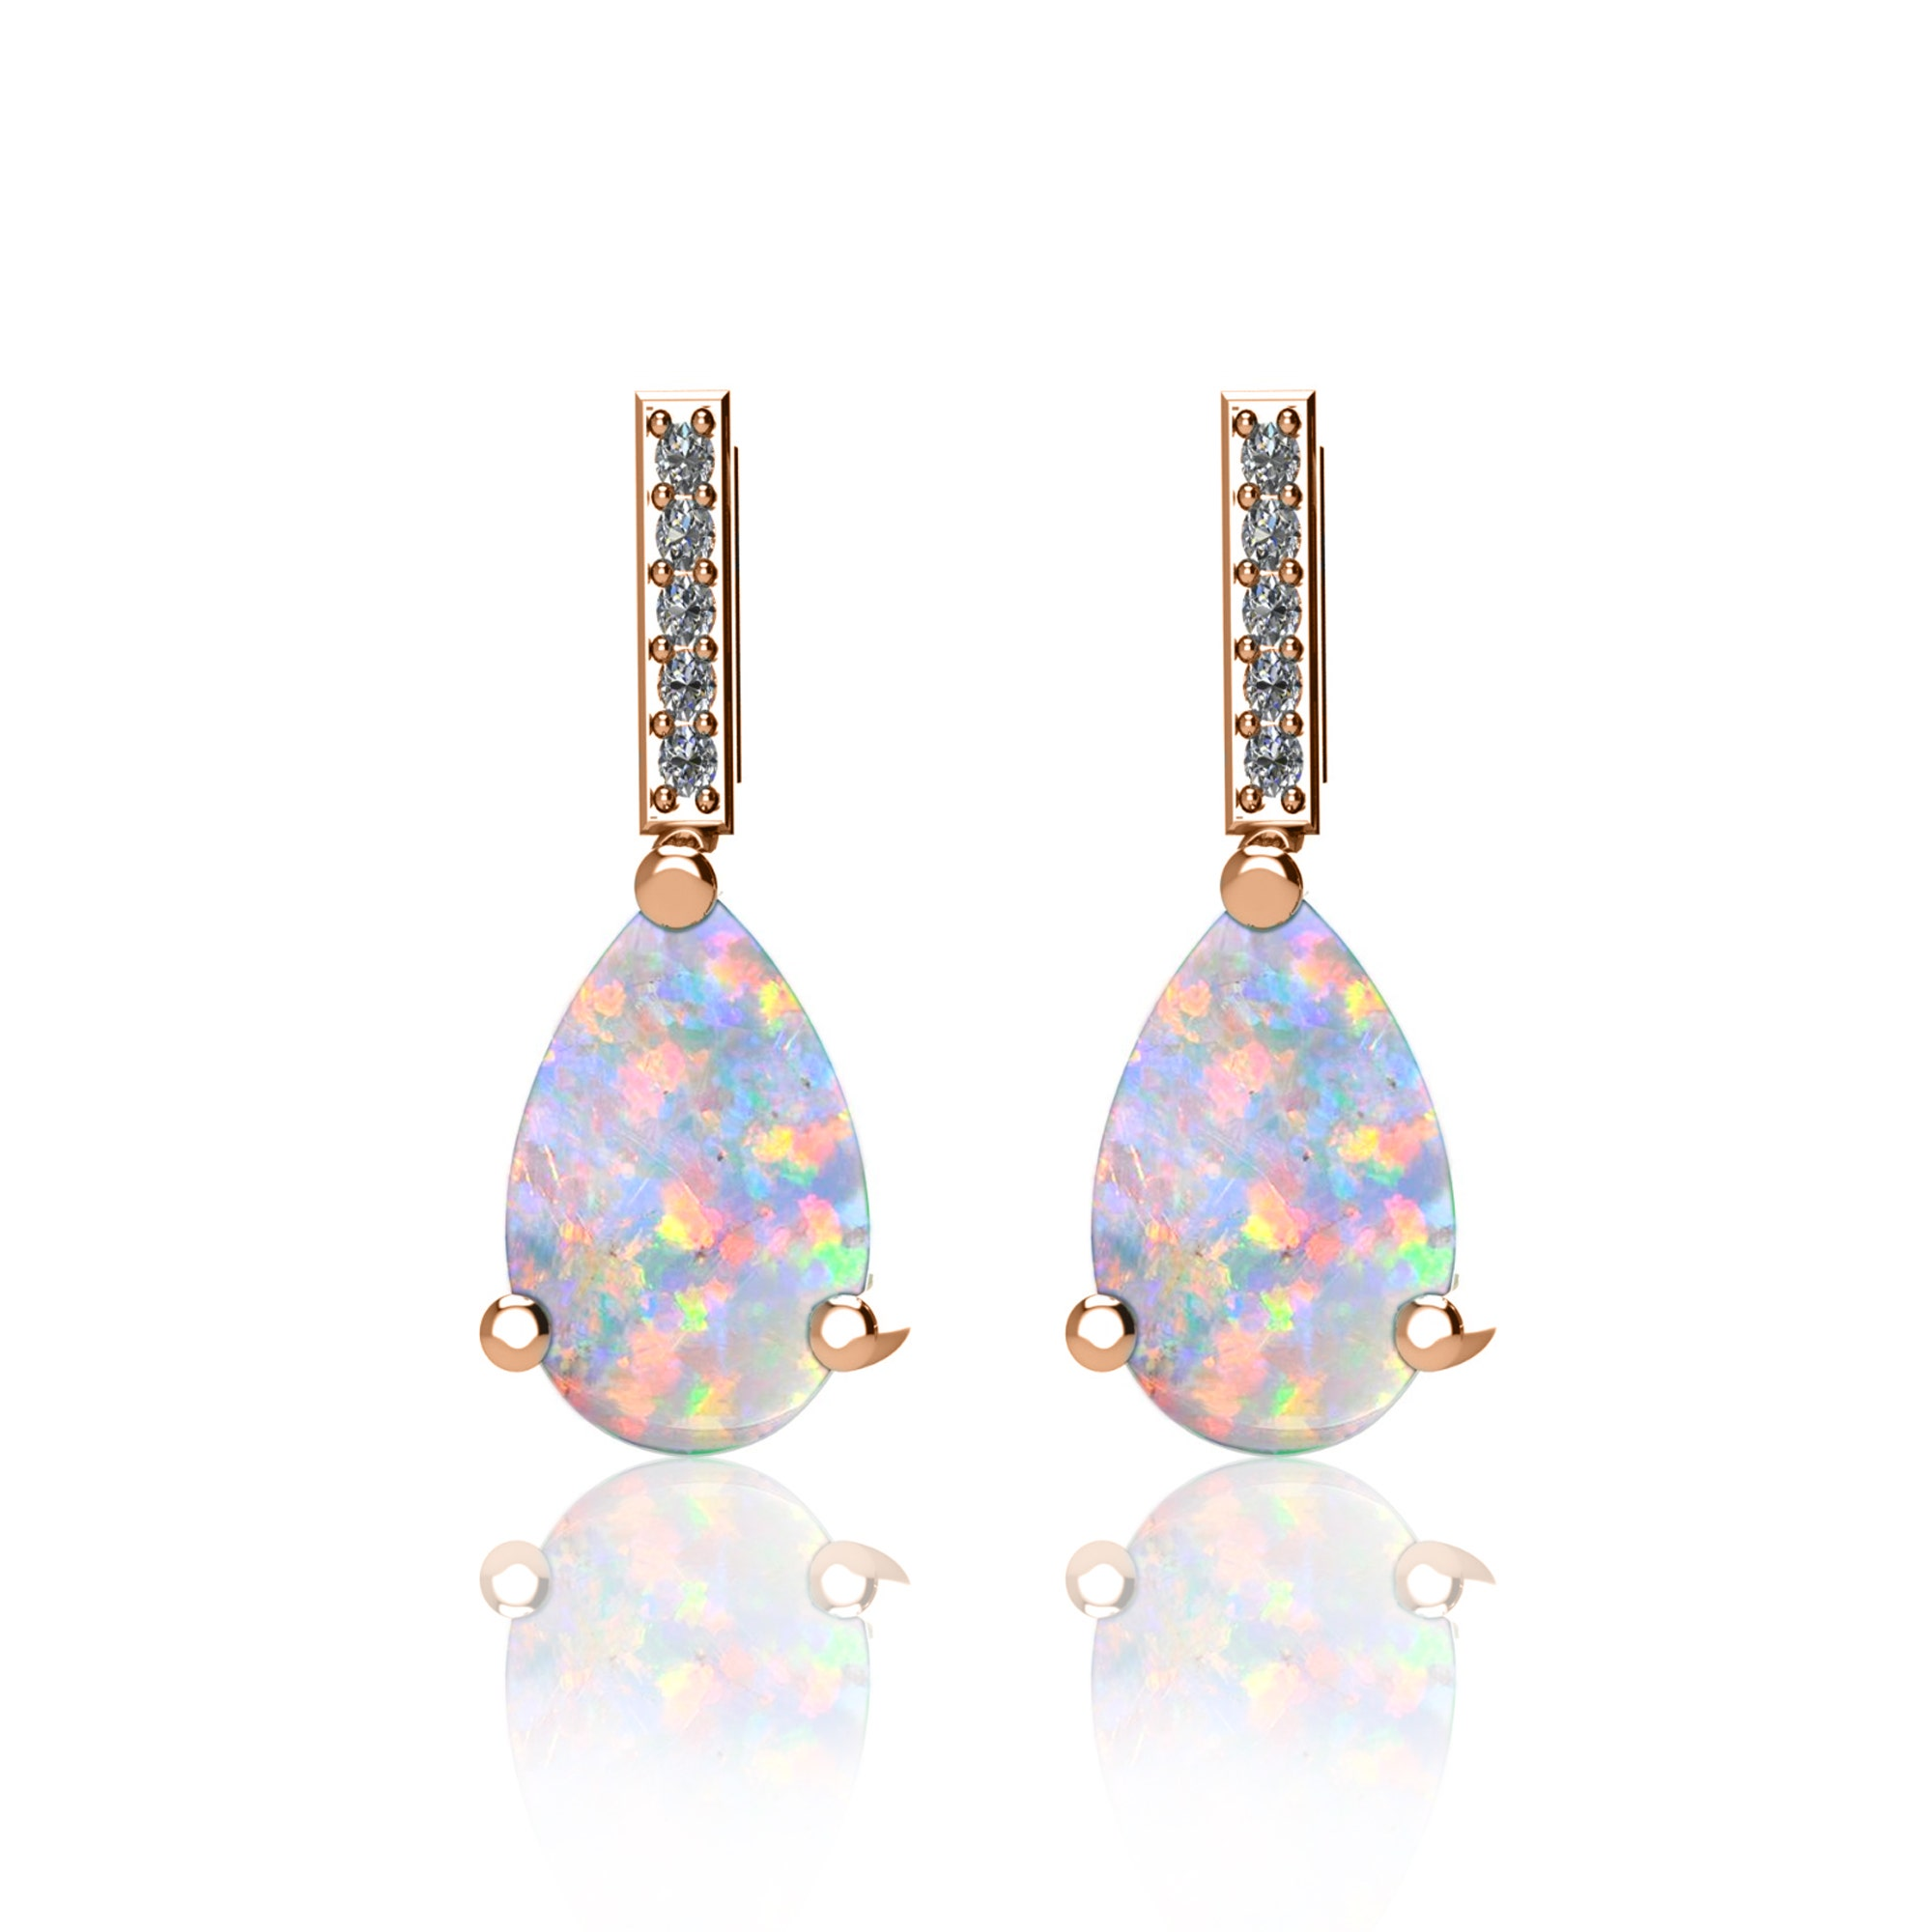 Opal 10x7mm Pear Shapes Stud Earrings White Gold Silver